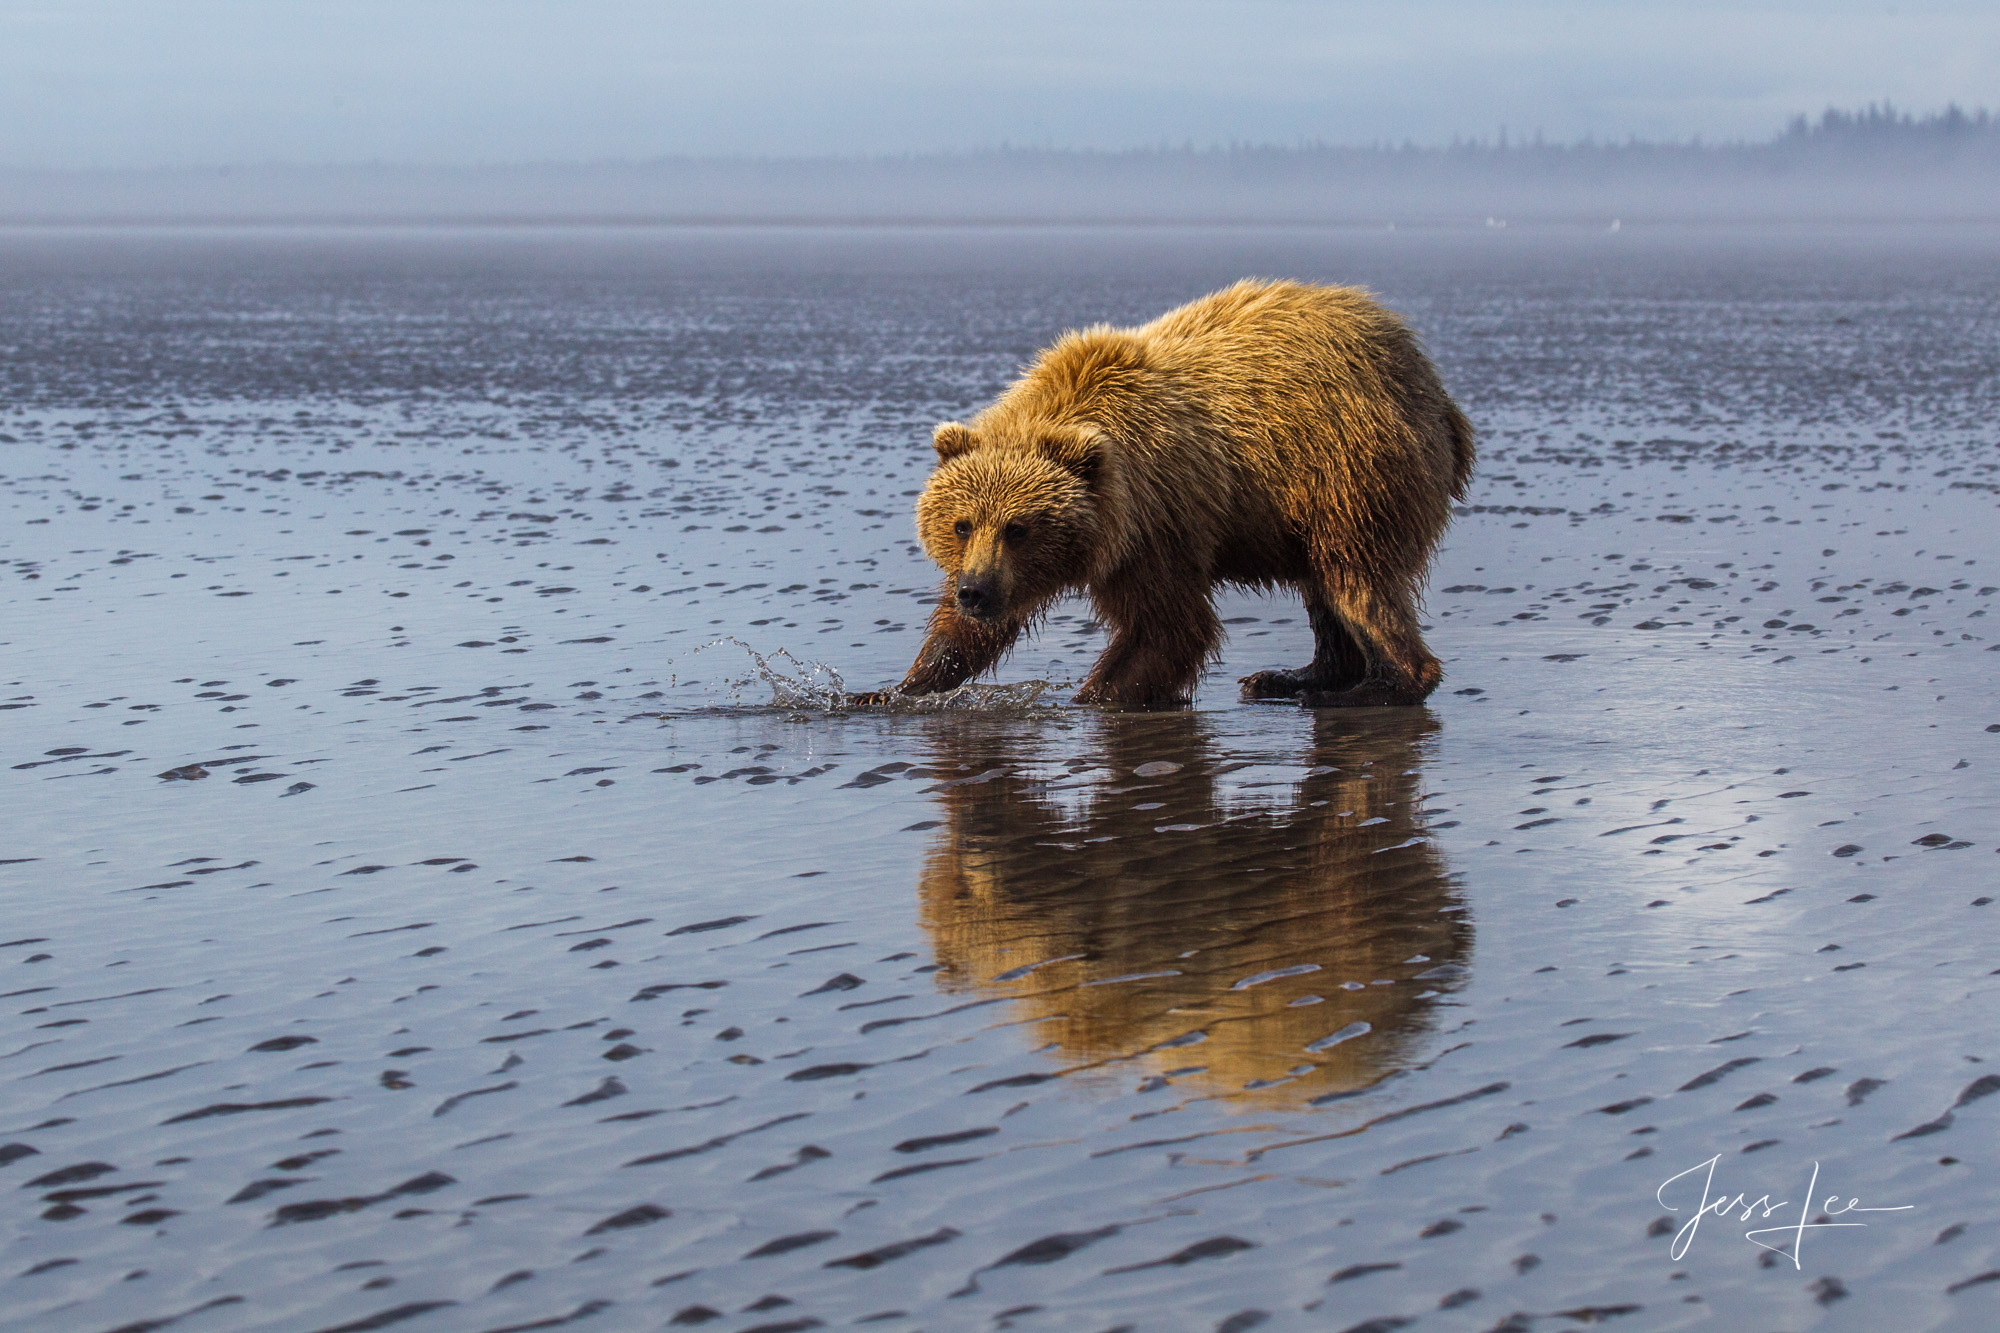 Alaska Grizzly, alaska, bear, brown, brown bear, coastal, lake clark, national park, Alaska*, bear*, brown bear*, brown bears*, brown*, coastal*, cubs*, grizzlies*, Grizzly*, Jess Lee*, Cooke inlet, l, photo